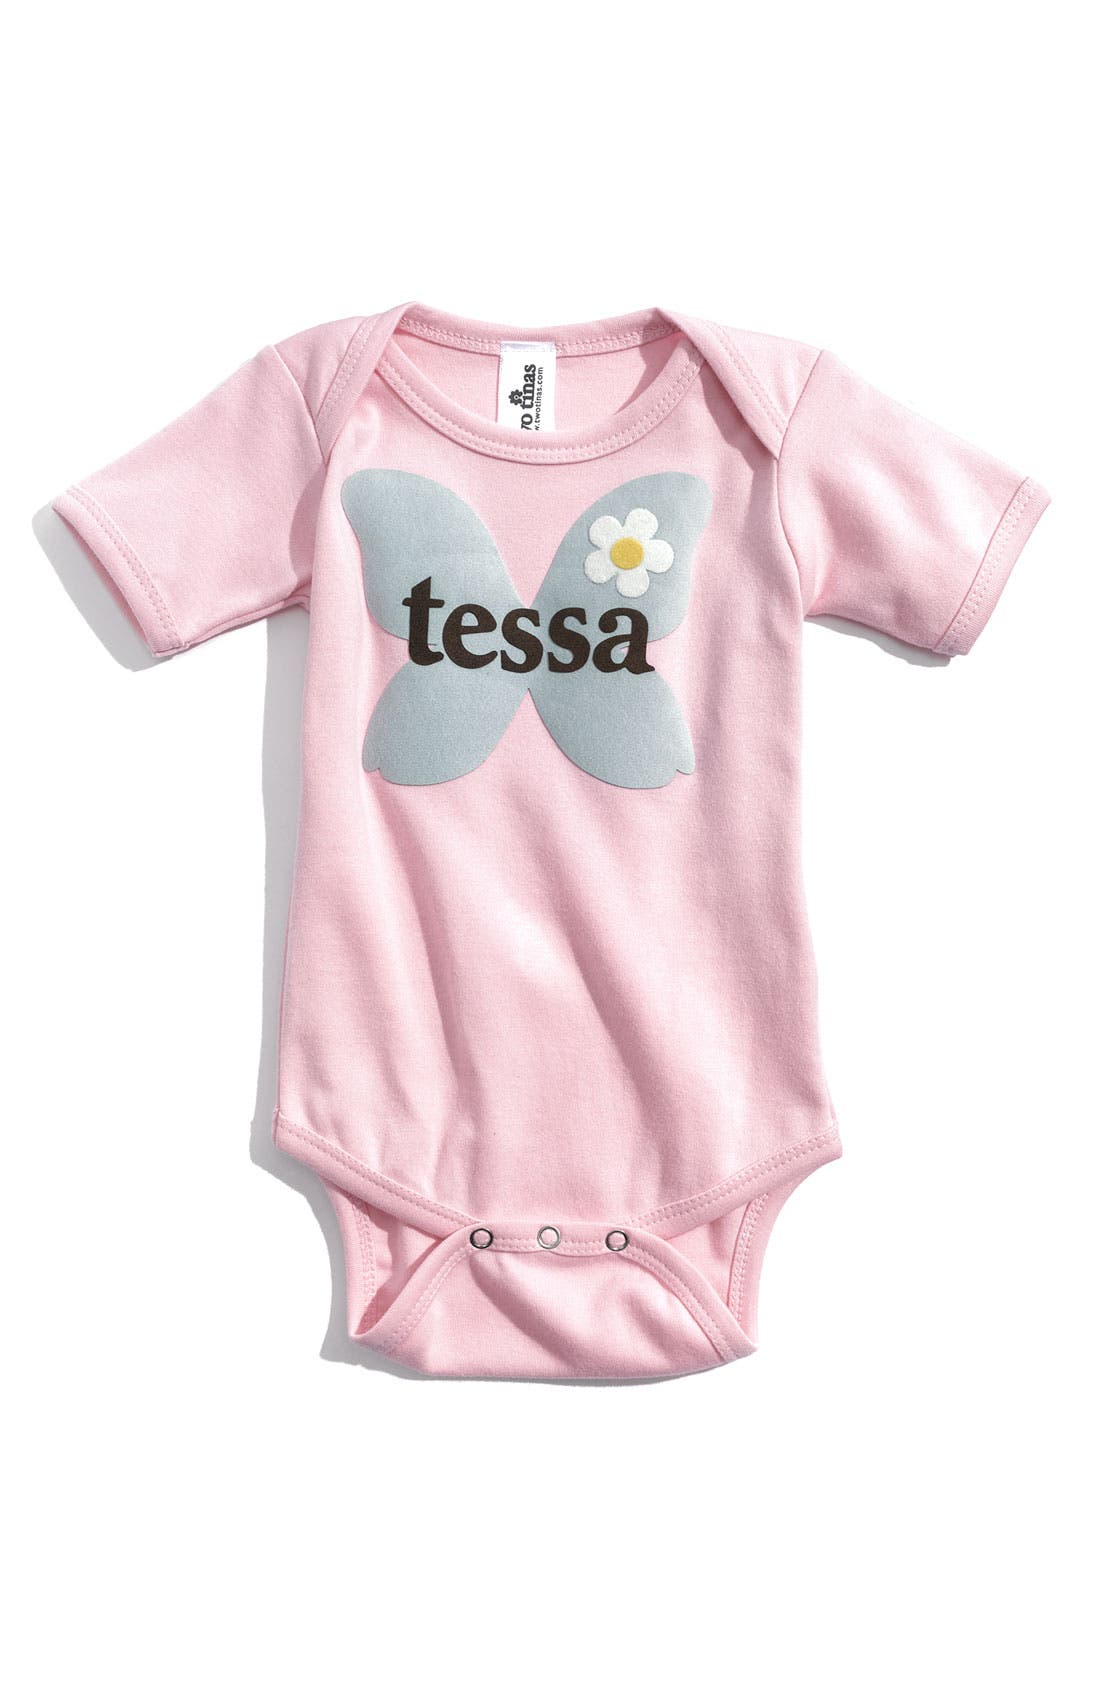 Main Image - Two Tinas 'Little Friends' Personalized Bodysuit (Baby)